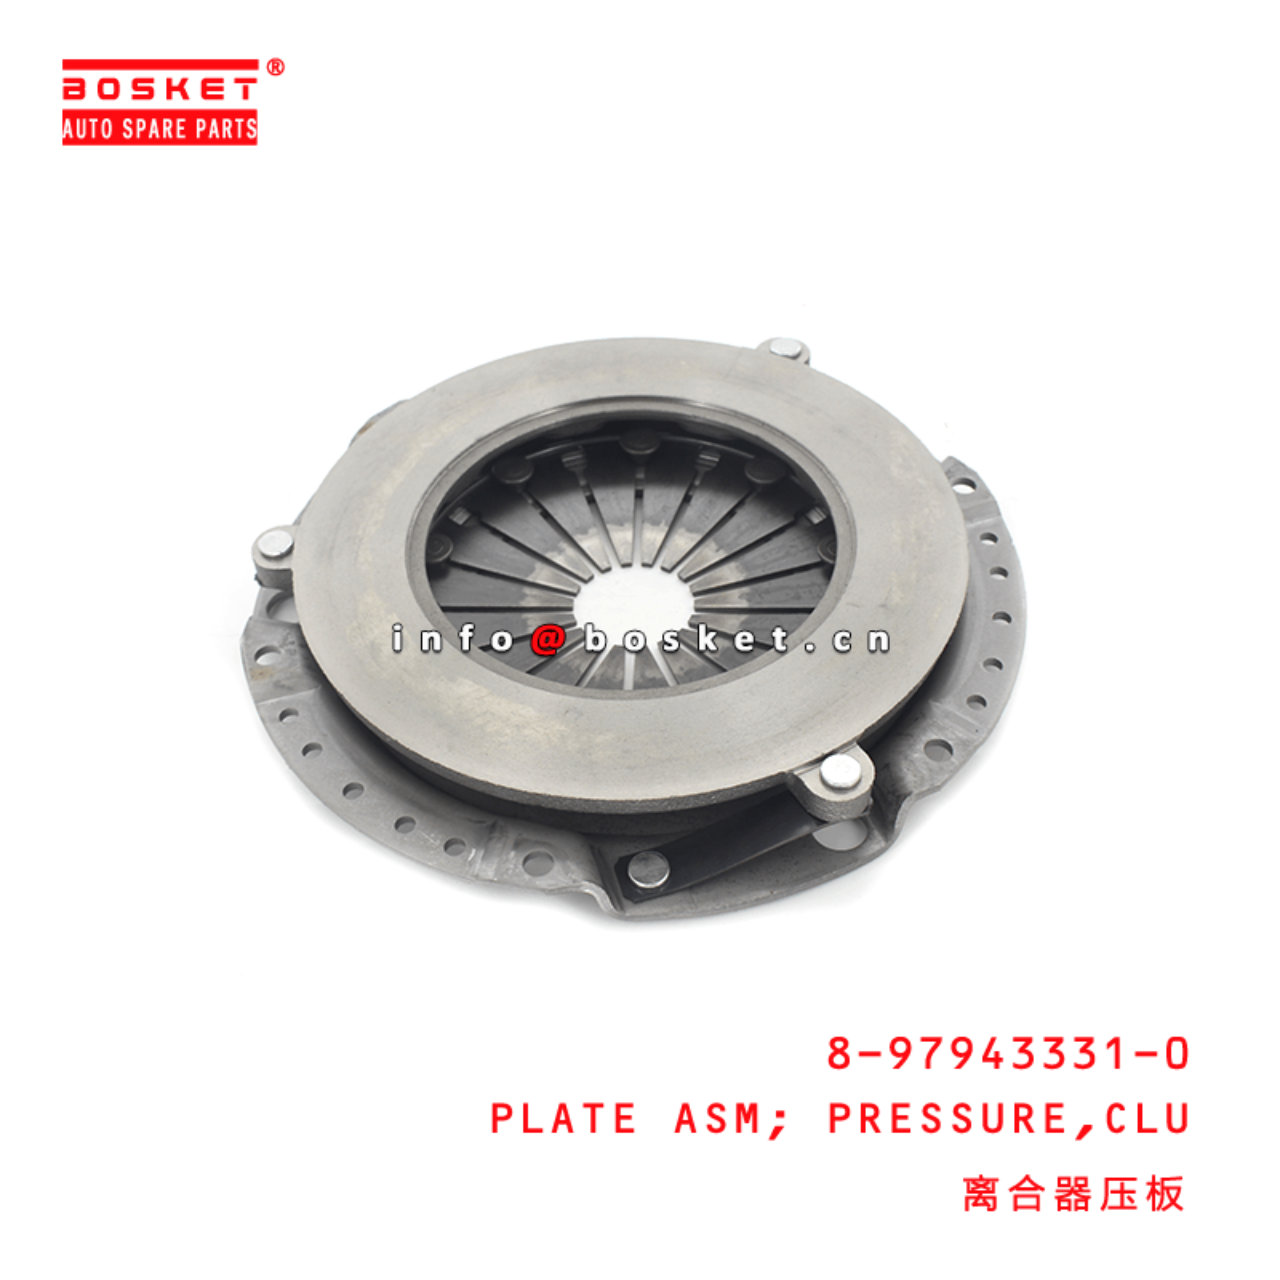 8-97943331-0 Clutch Pressure Plate Assembly 897943...